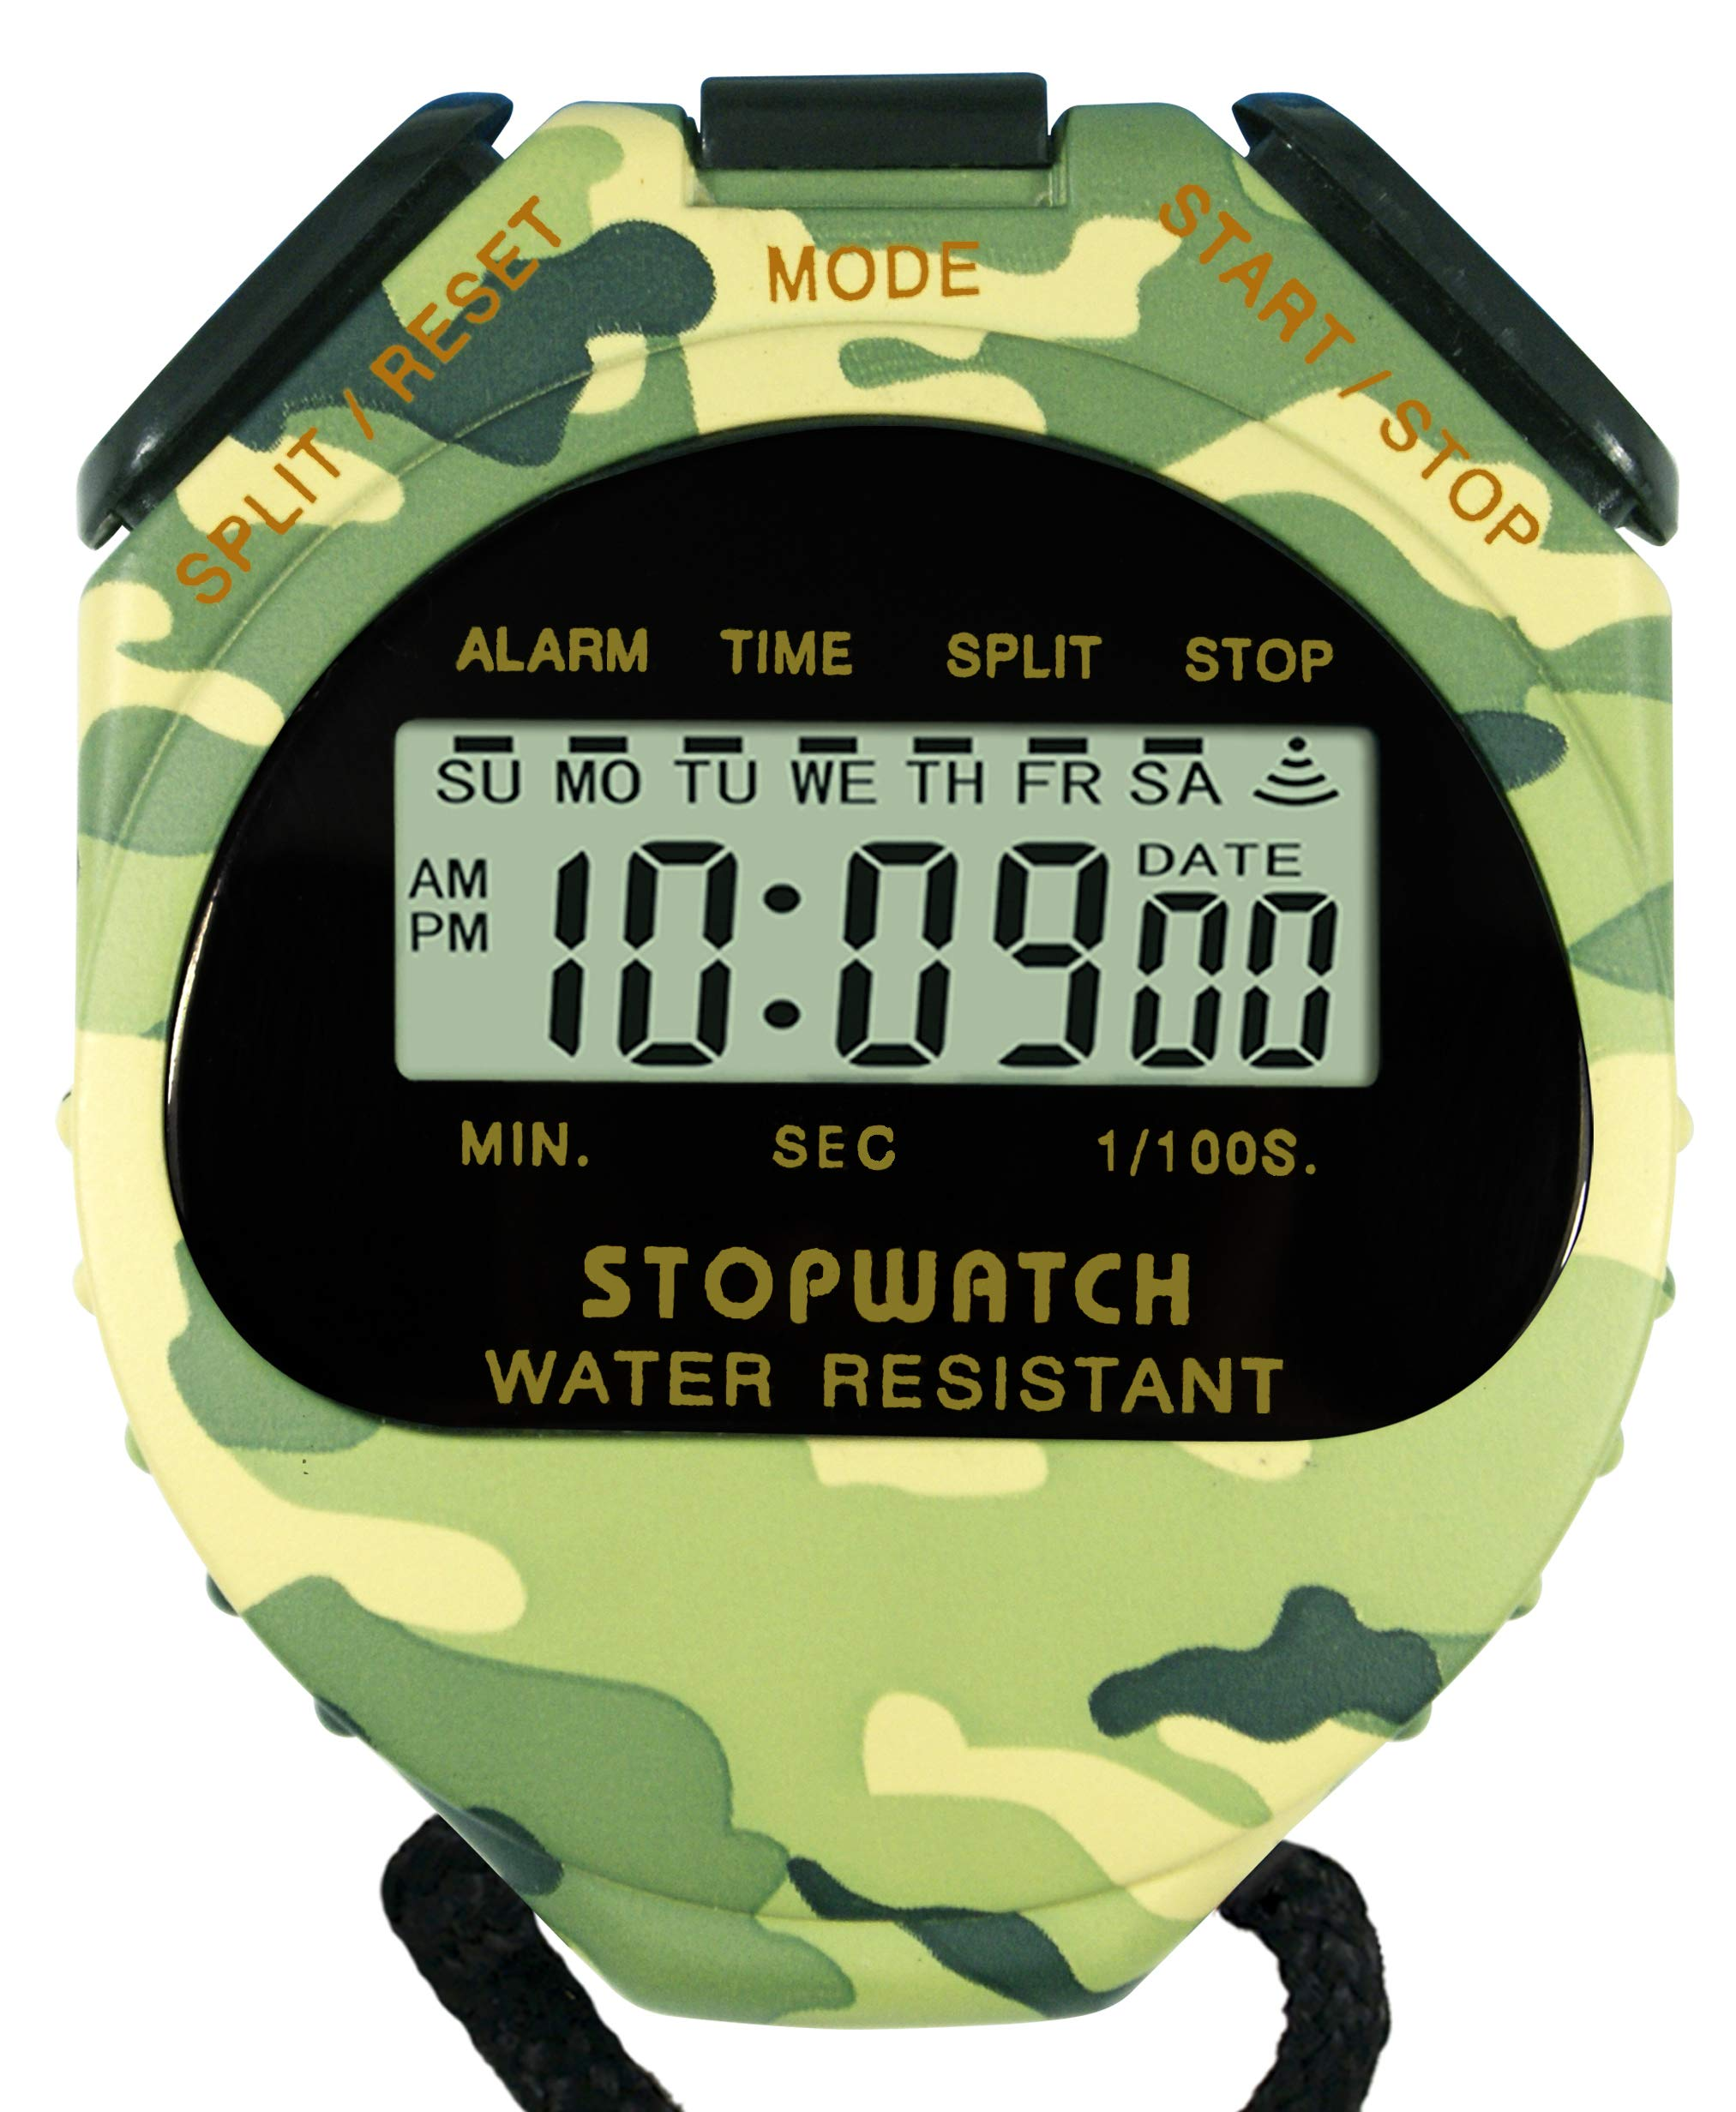 Globalwave Chronograph Water Resistant Stop Watch Waterproof Stopwatch Timer, Large Display for Fitness Swimming Outdoor School Training and Military use (Army Green, Camouflage)